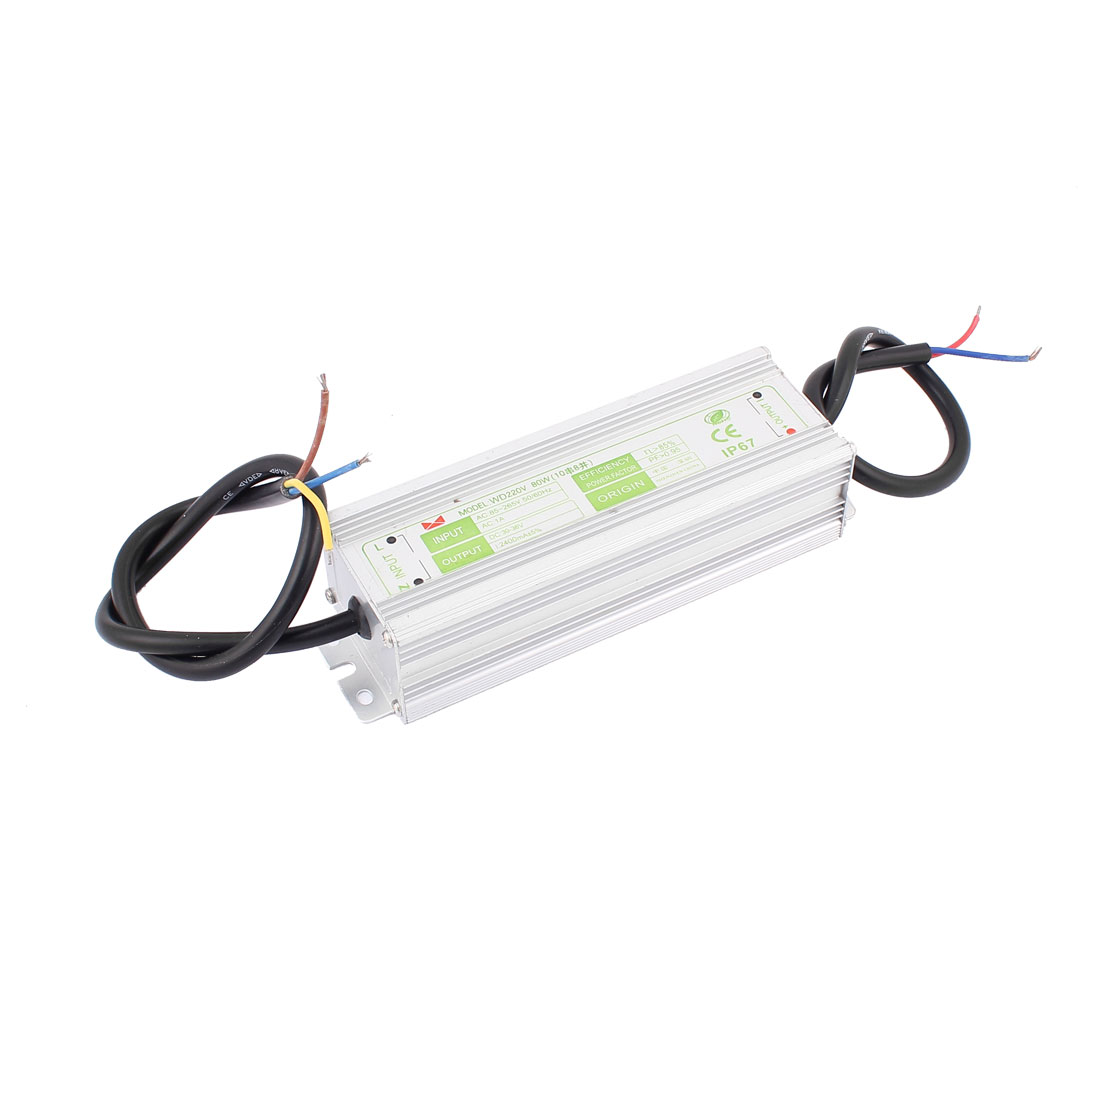 AC90-265V 1A to DC30-36V 2400mA 80W IP67 Waterproof Rectangle Aluminum Shell LED Driver Power Supply Transformer Converter